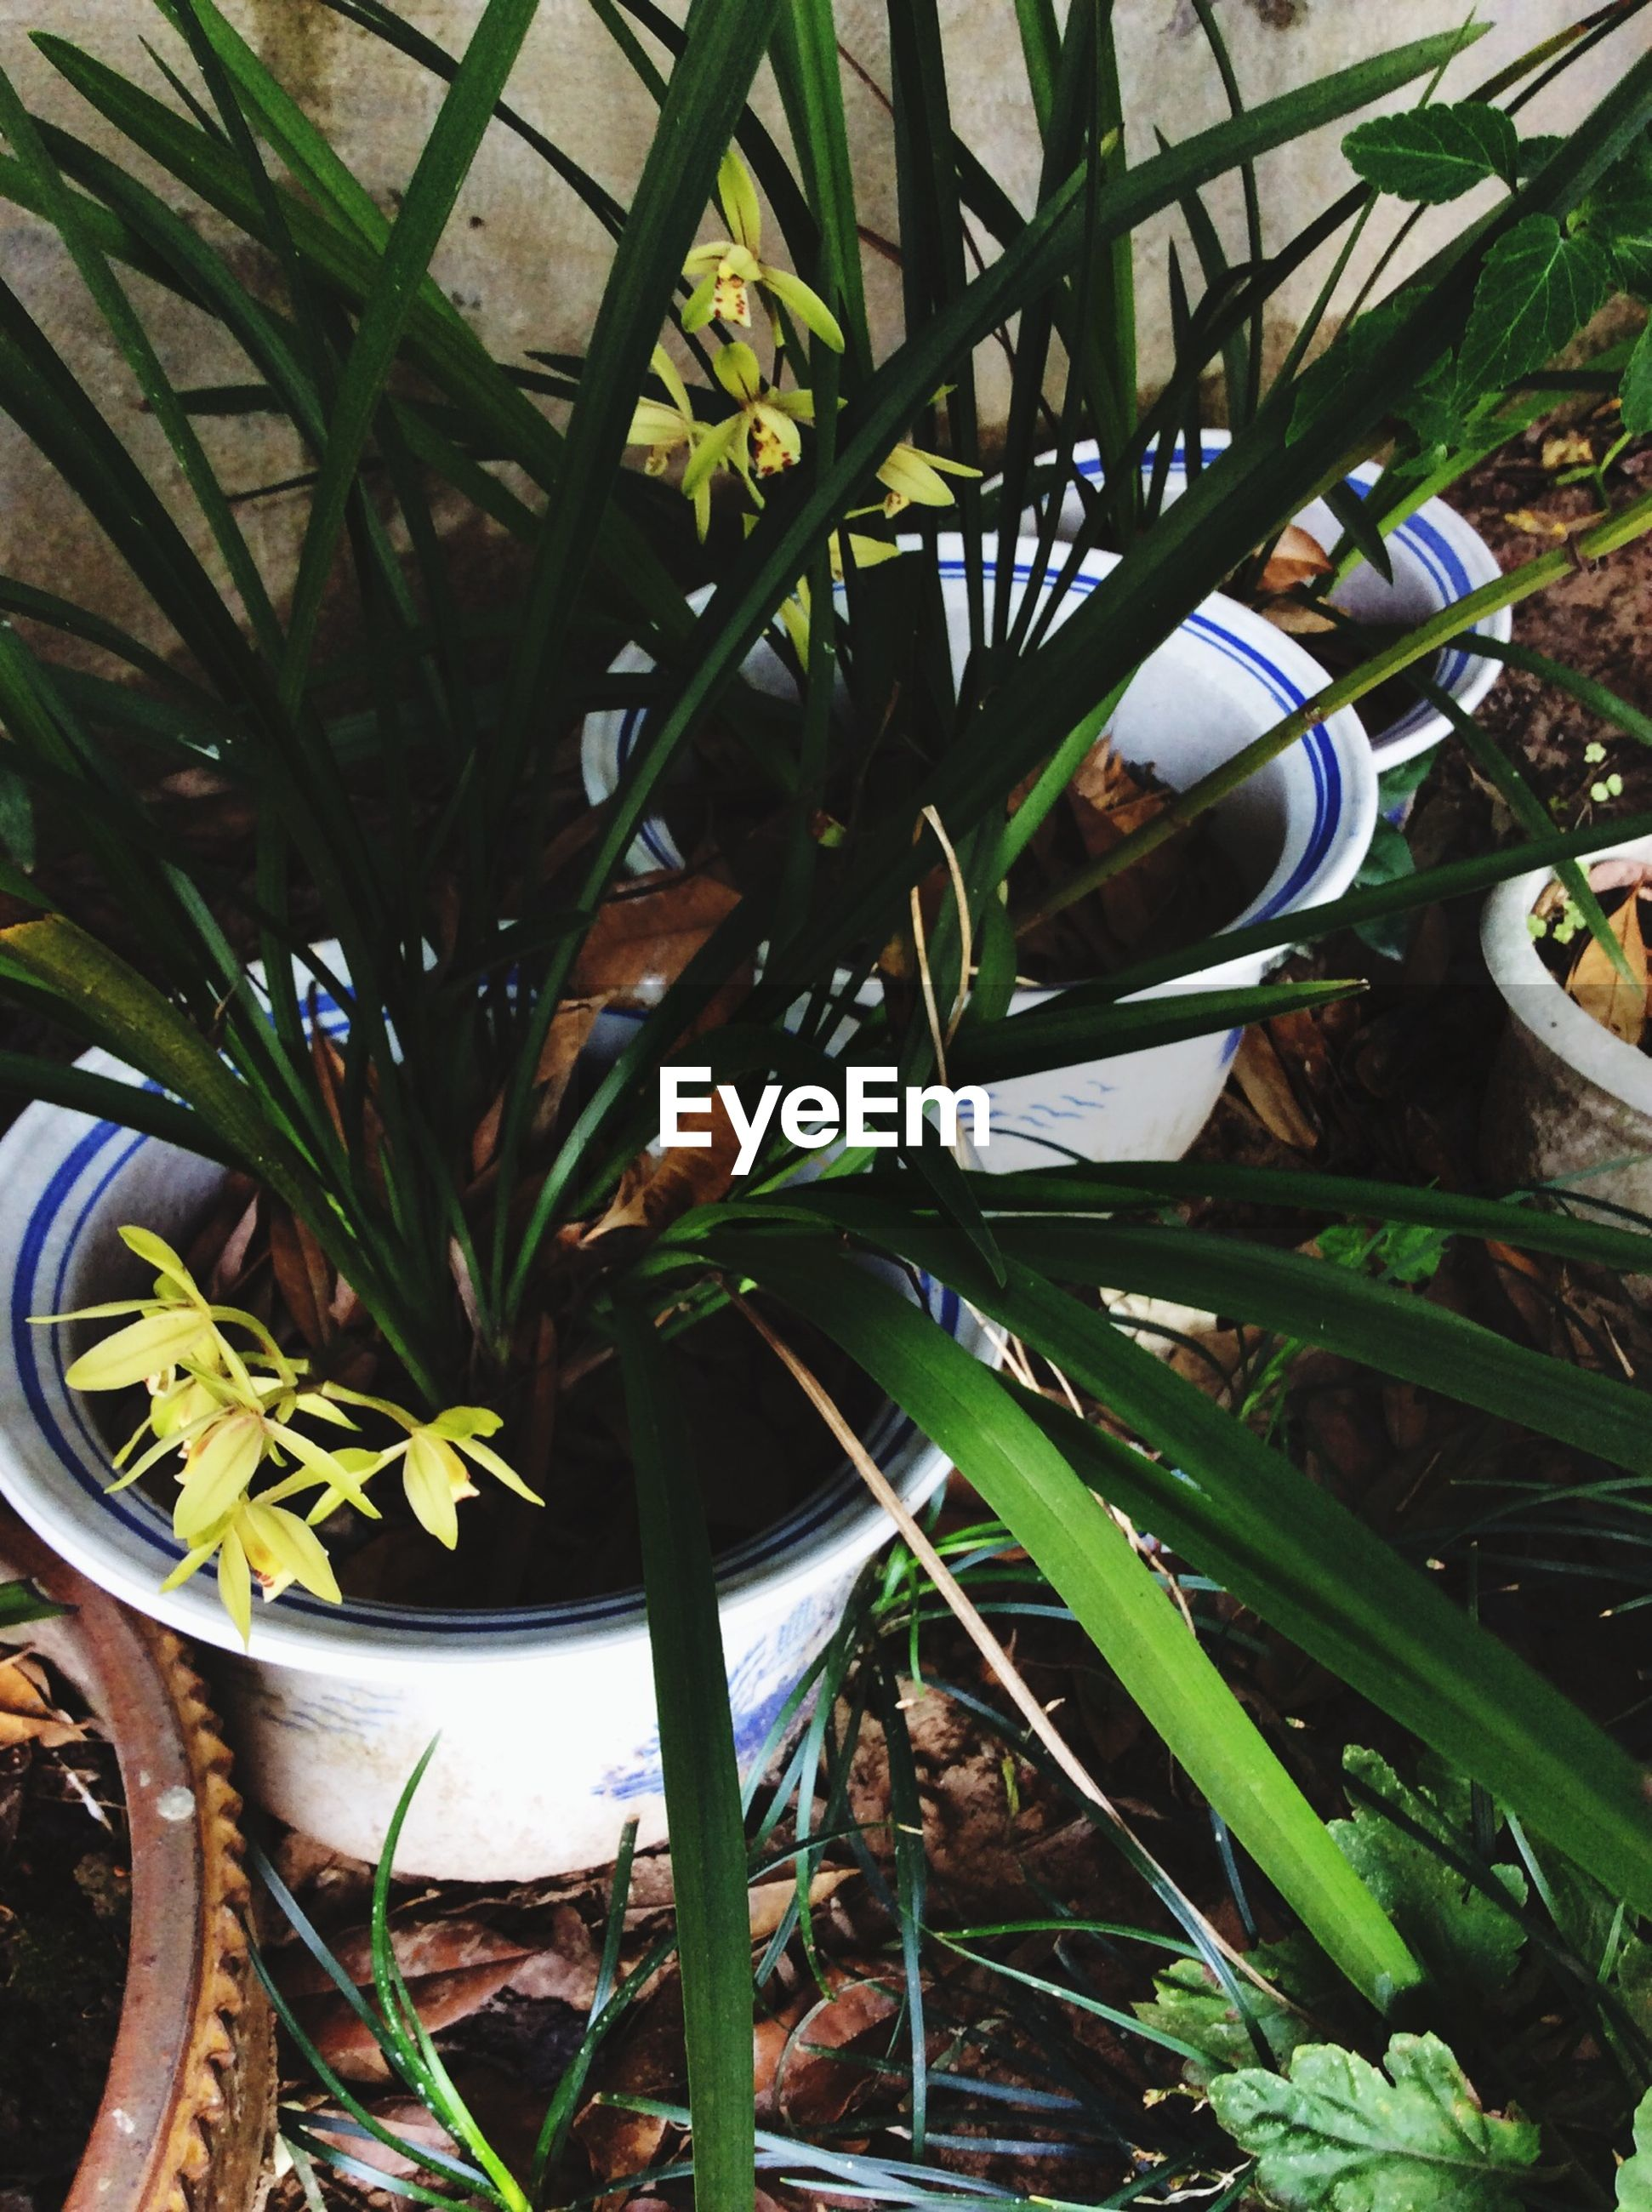 growth, plant, leaf, green color, potted plant, front or back yard, close-up, nature, tree, day, outdoors, sunlight, no people, high angle view, growing, built structure, freshness, formal garden, low angle view, circle